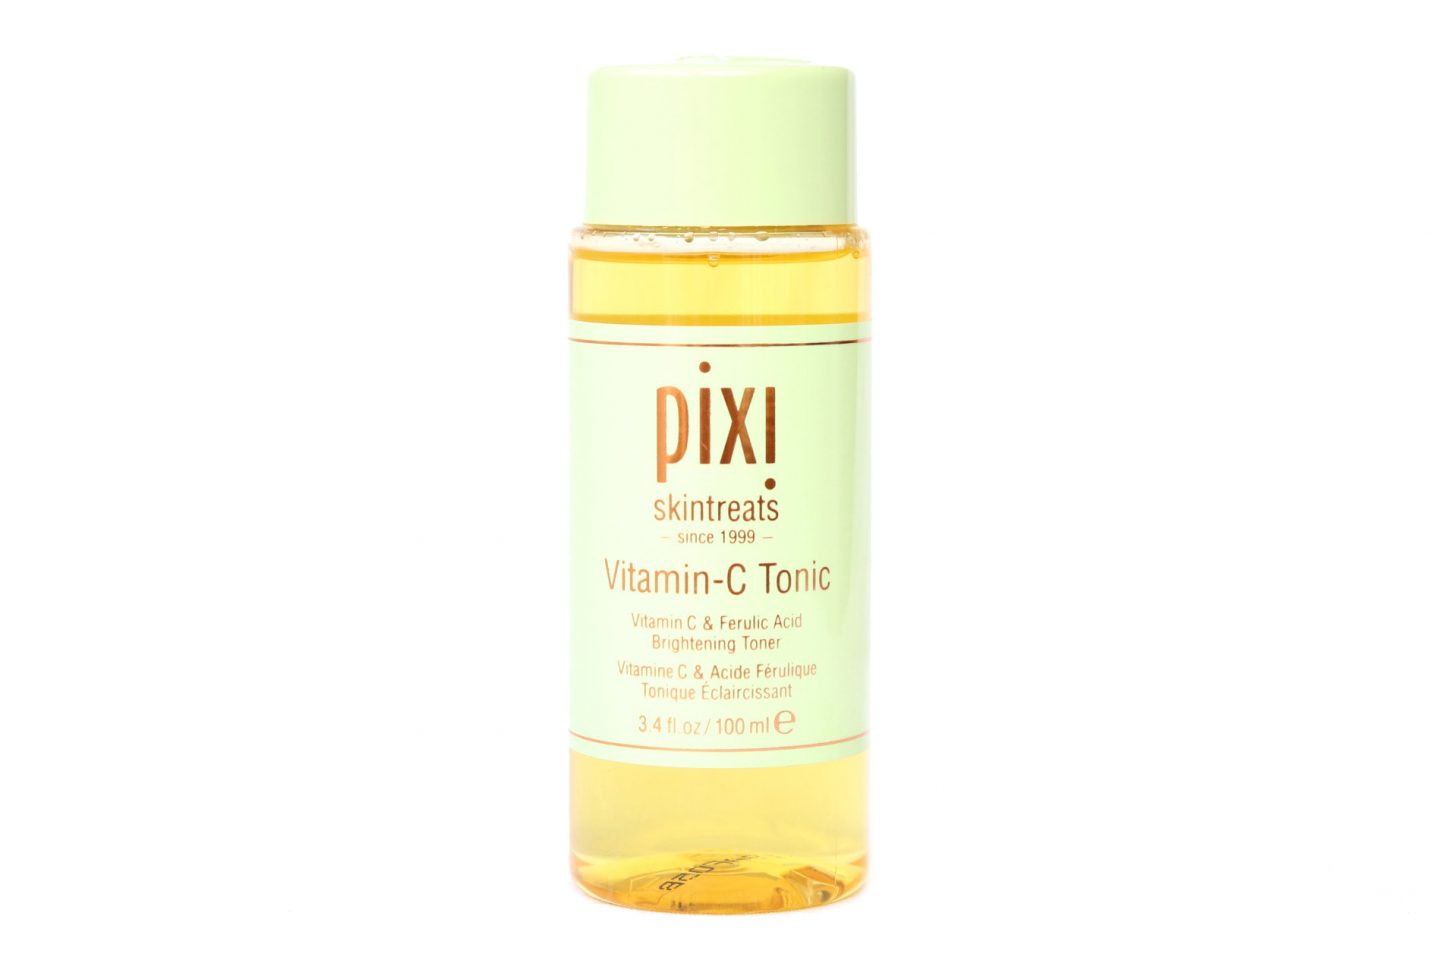 Pixi Vitamin-C Tonic Review